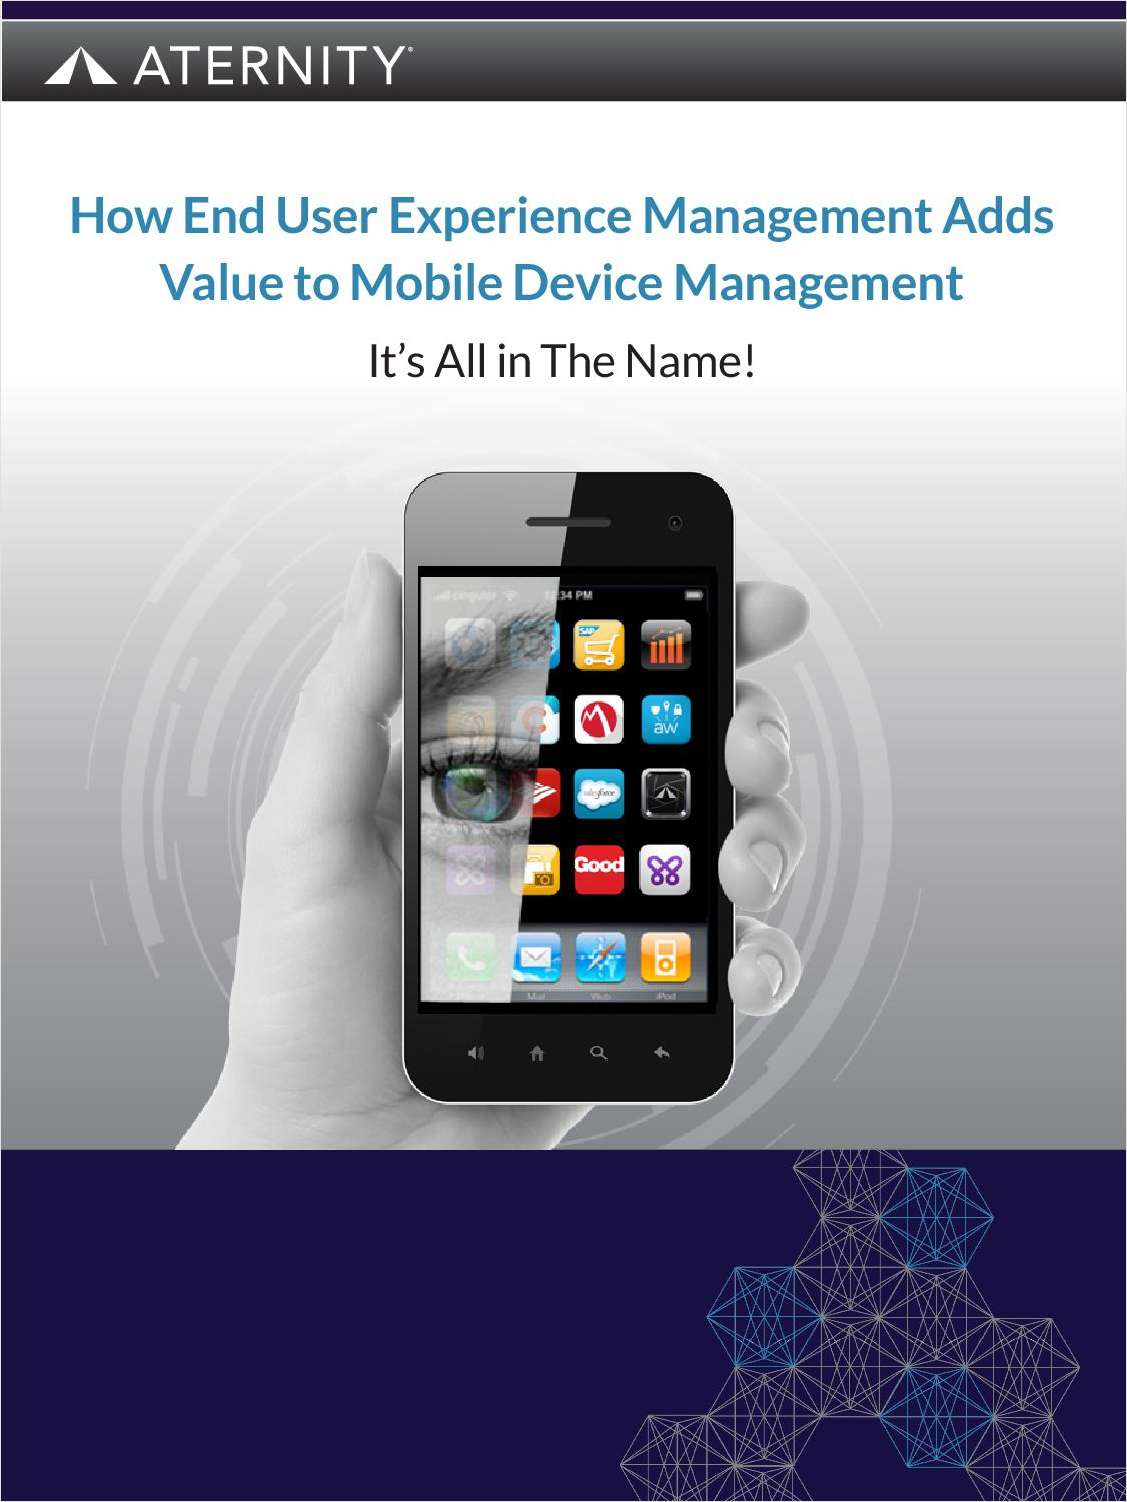 End User Experience Management Complements Mobile Device Management